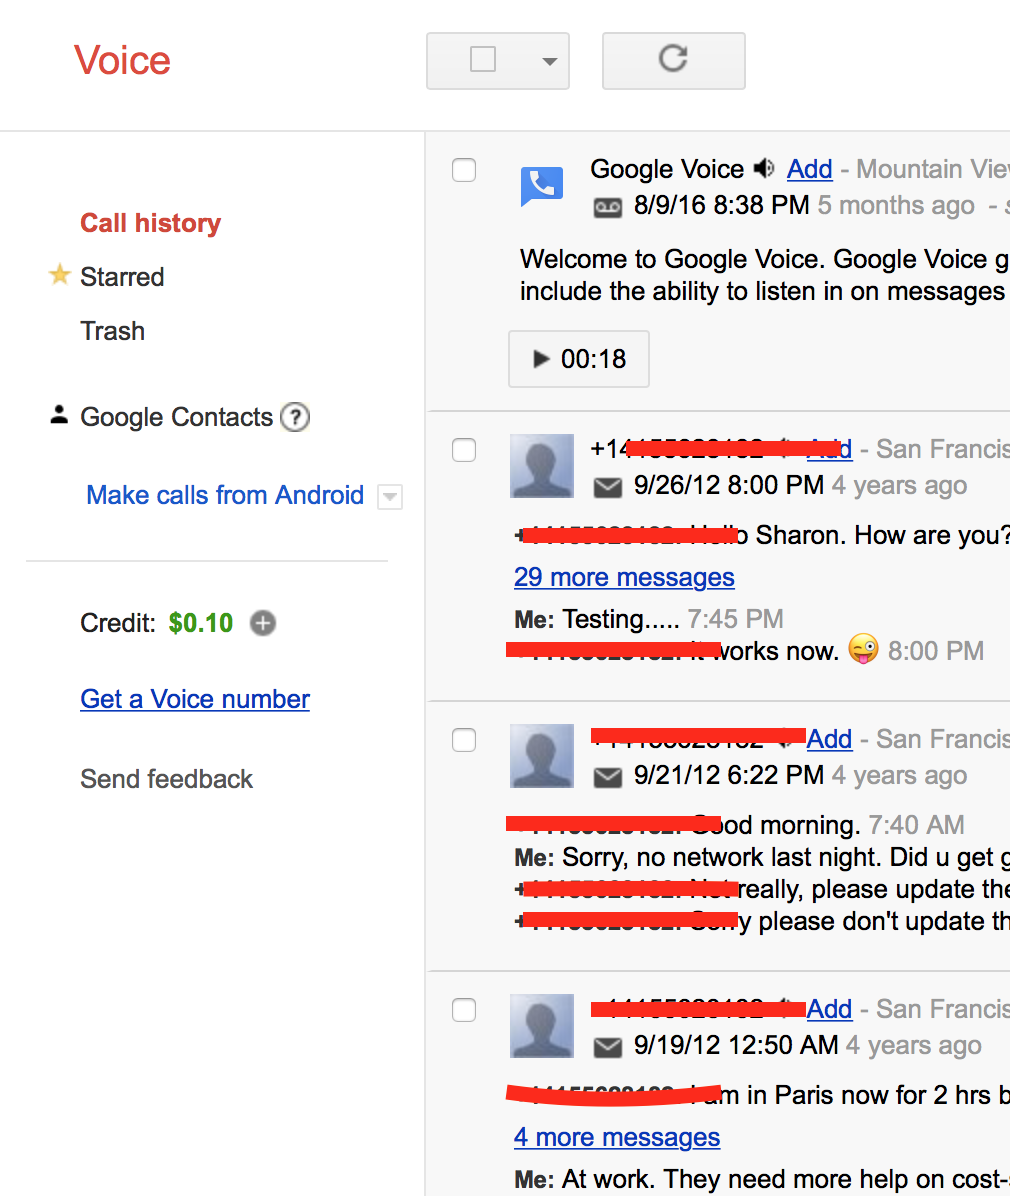 How to reclaim number back - Google Voice Help